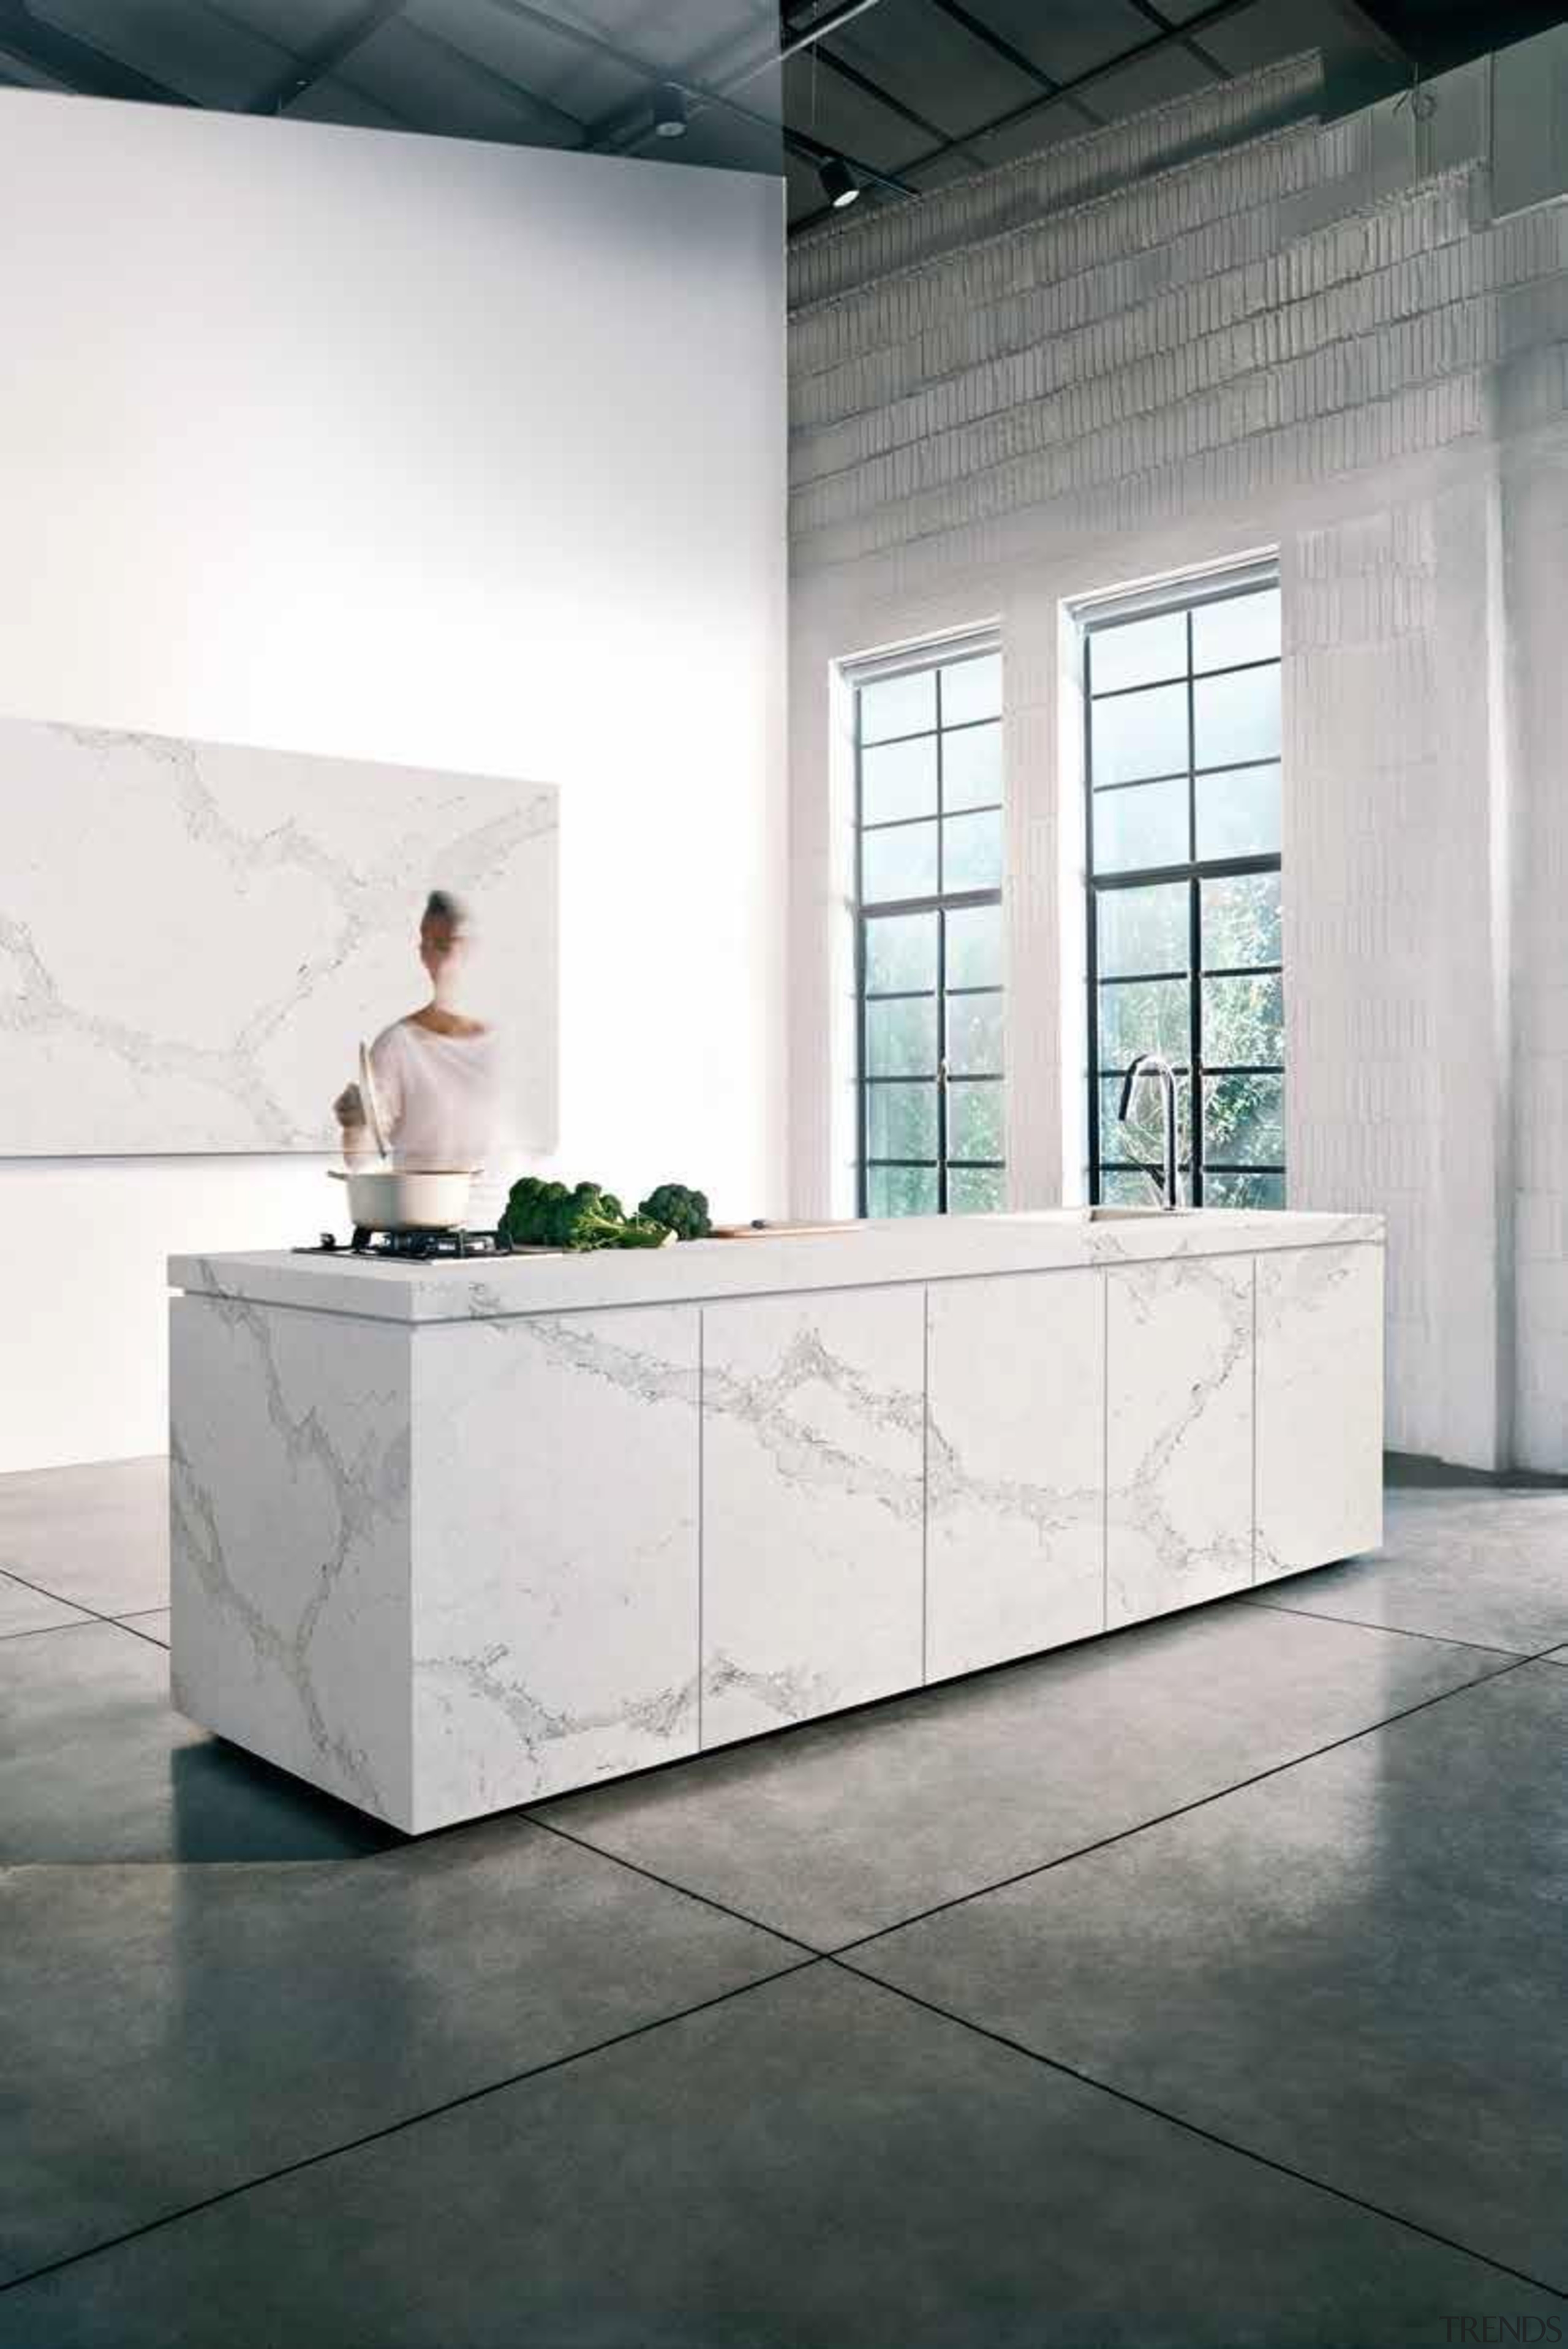 As Caesarstone's interpretation of natural Calacatta marble, Calacatta architecture, bathroom, floor, flooring, furniture, interior design, product design, table, white, gray